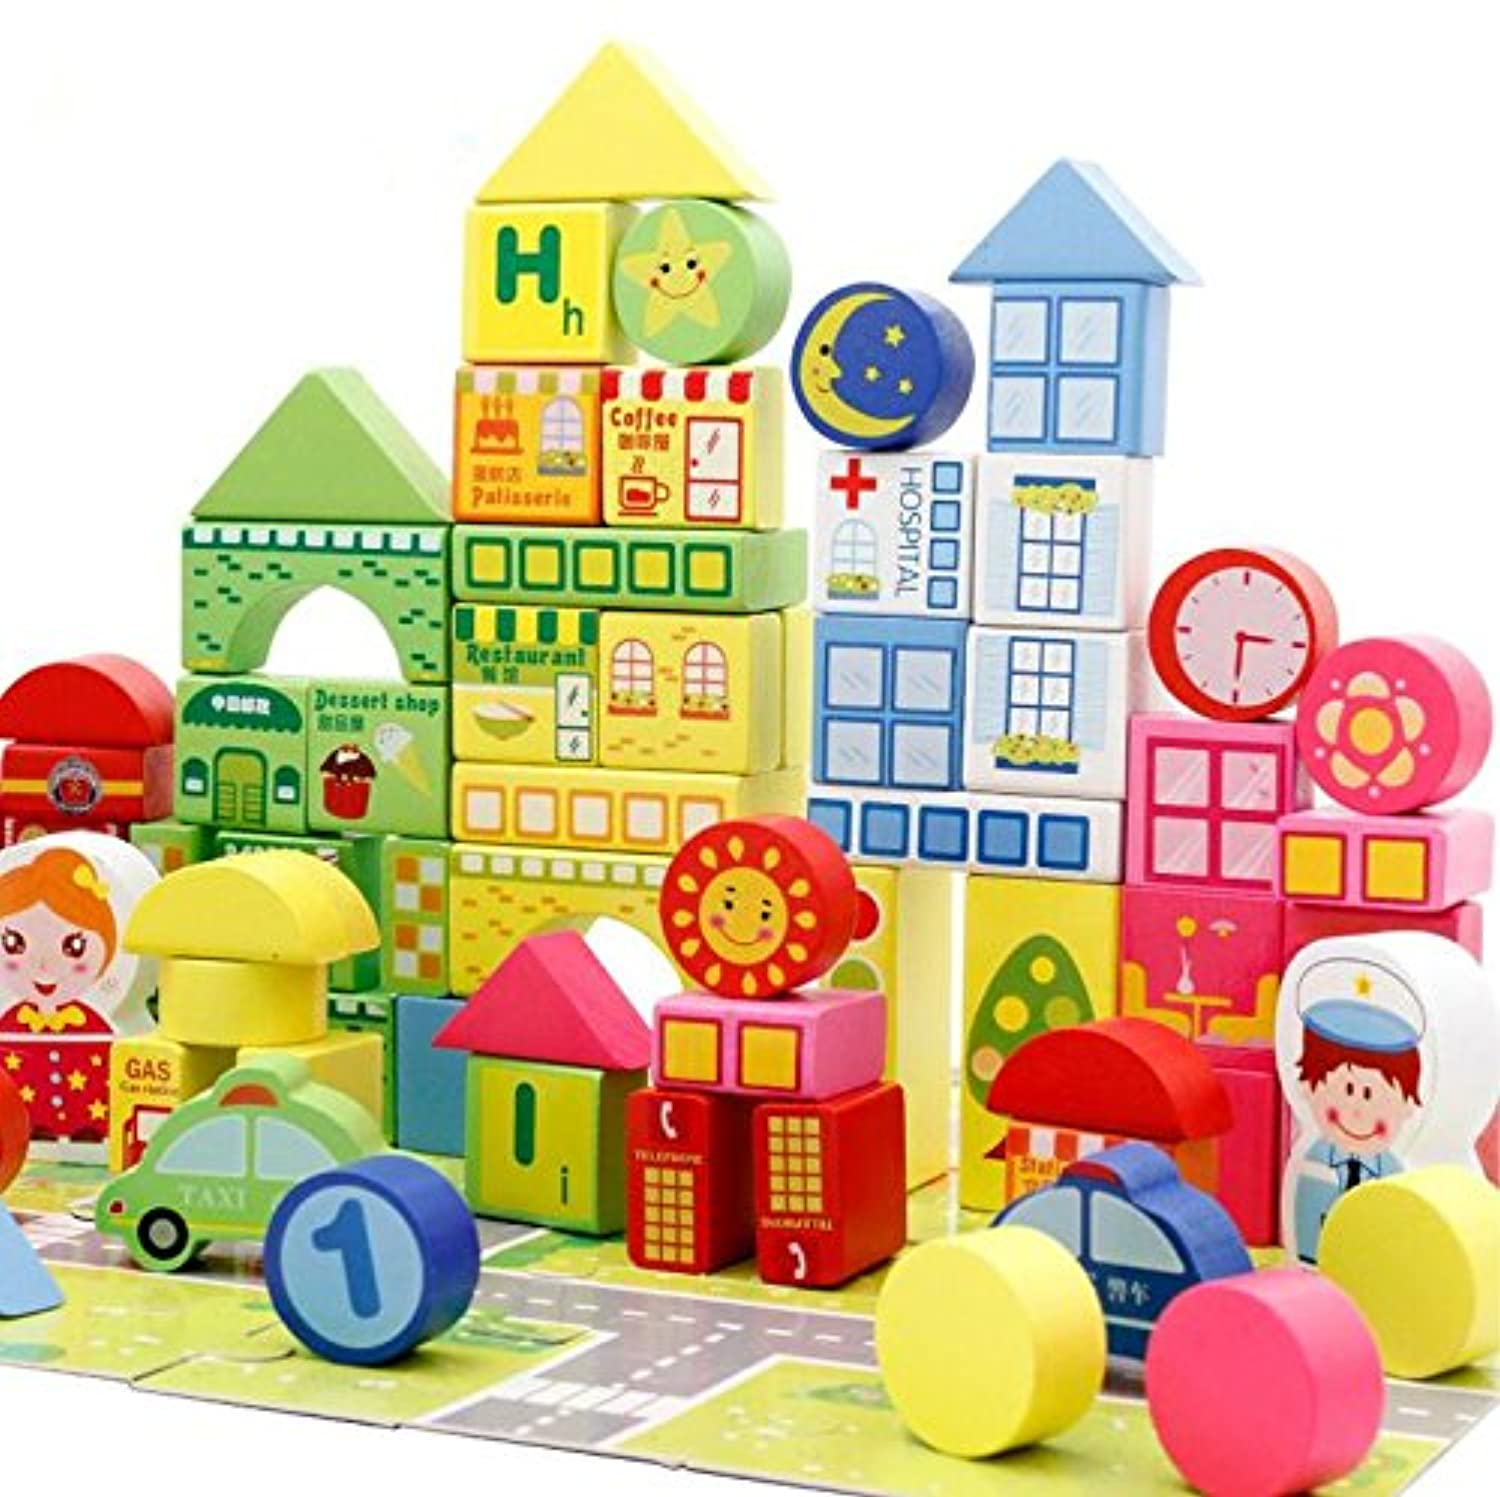 City Traffic木製ビルディングブロックStacking set-100櫛基本Educational Build & Play Puzzle Jigsawおもちゃfor Toddlers Preschool Age